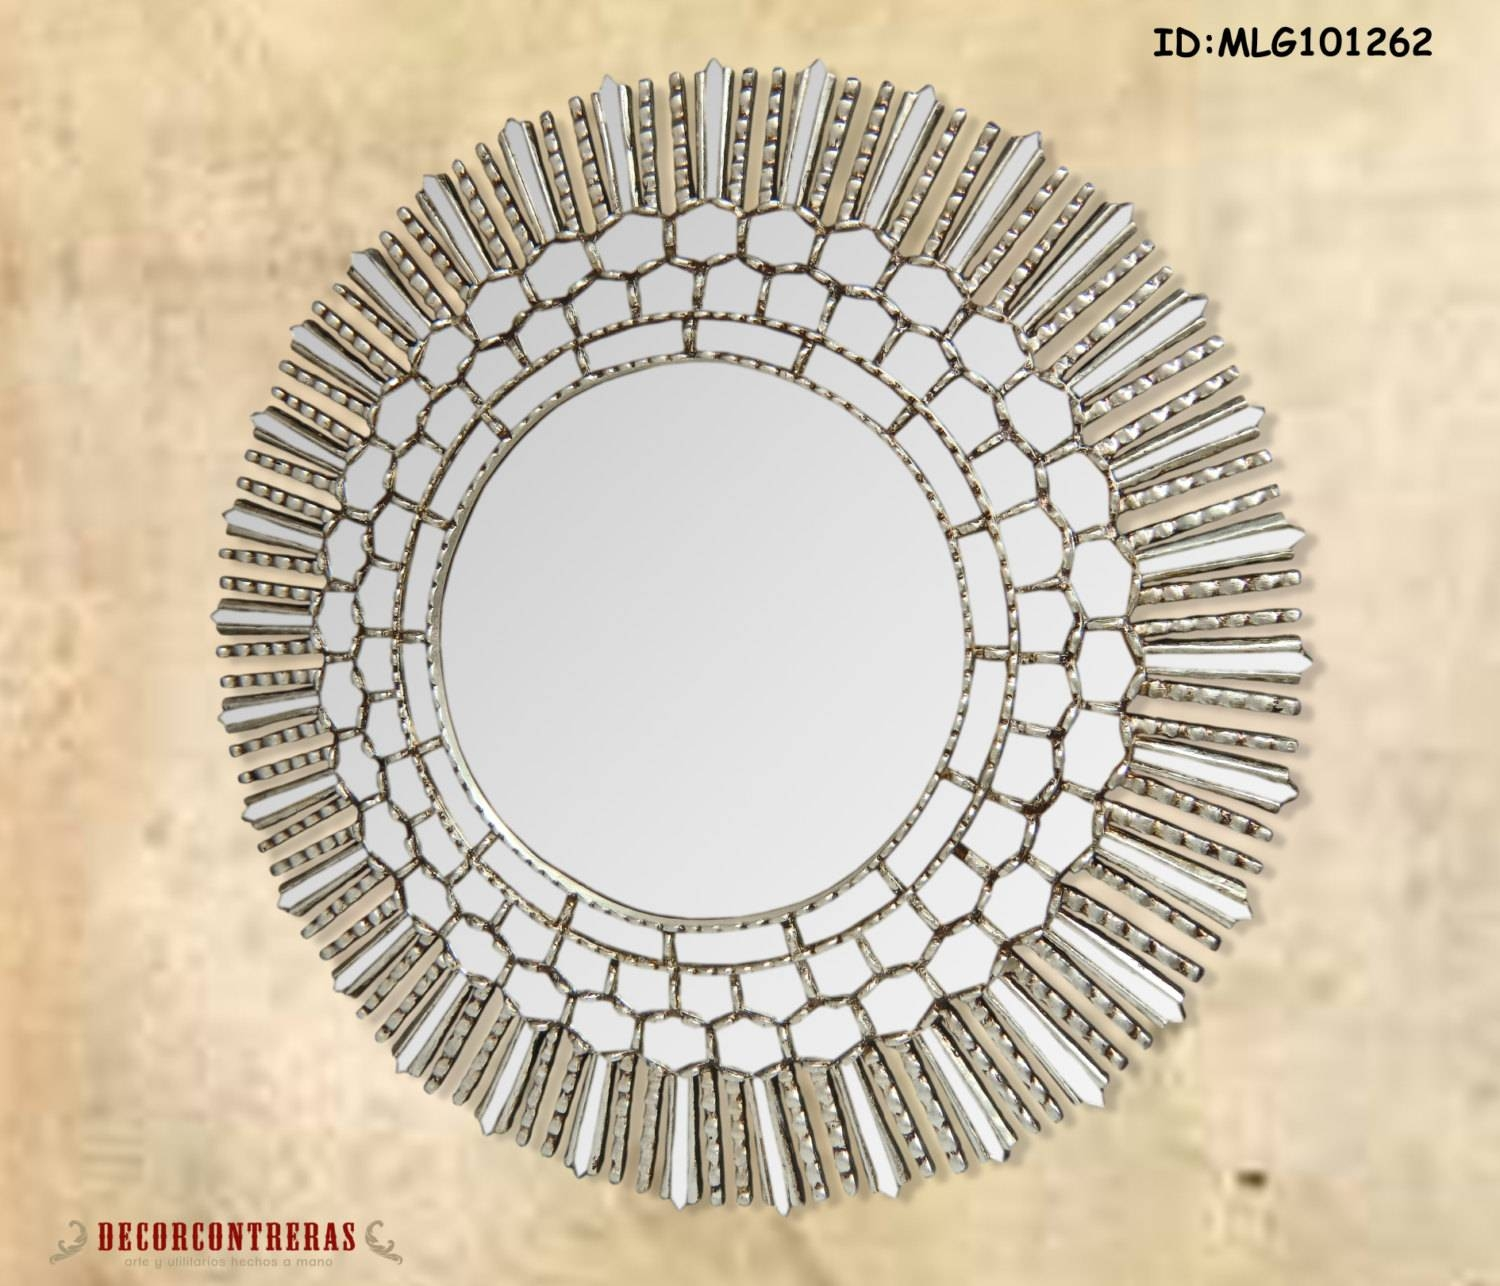 Large Circular Wall Mirrors 127 Breathtaking Decor Plus Decorative with Circular Wall Mirrors (Image 12 of 25)